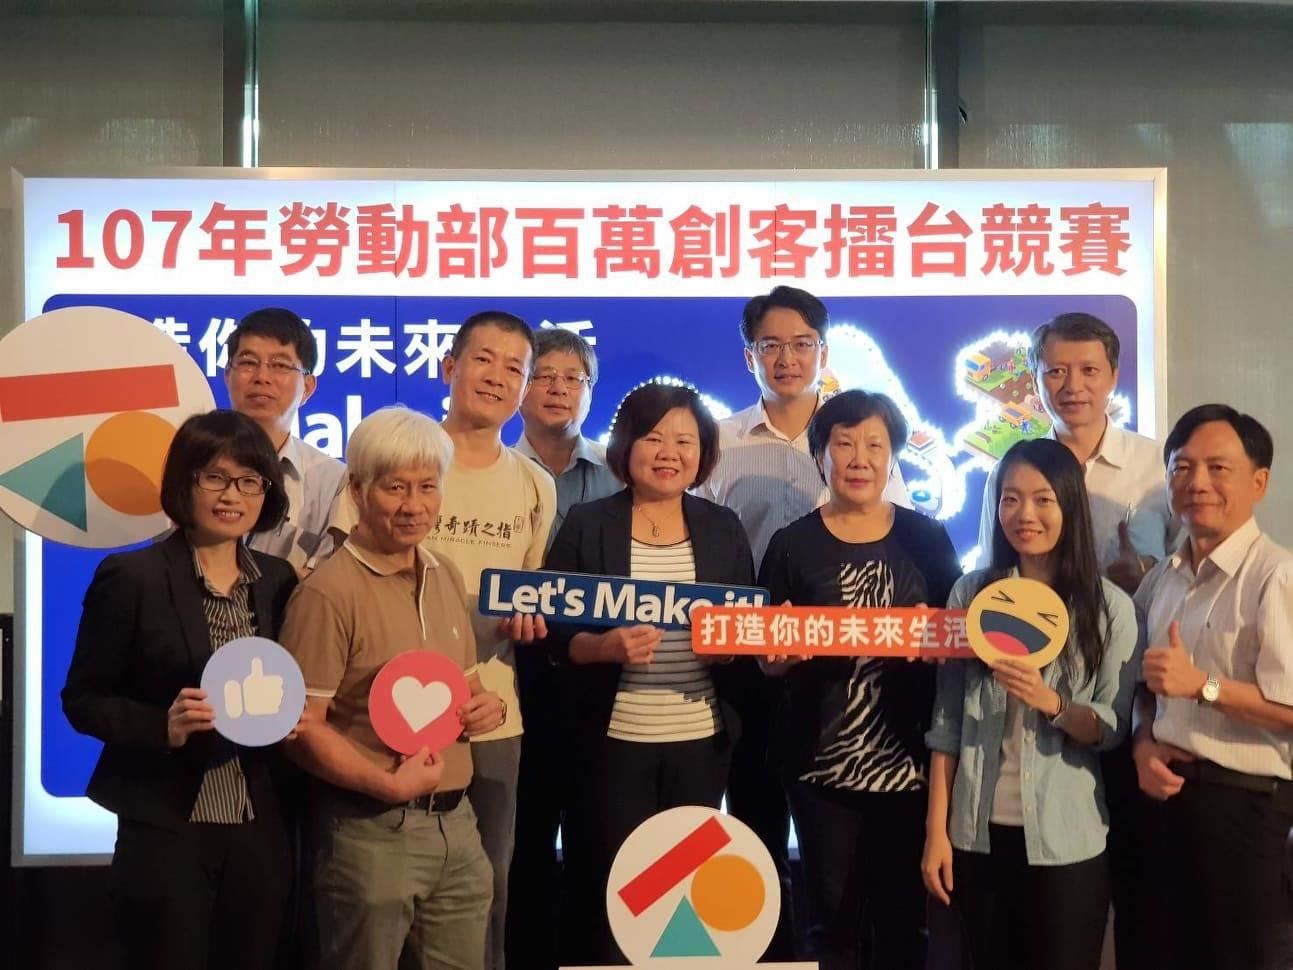 Maker culture, 劳动部劳动力发展署, 劳动部劳动力发展署桃竹苗分署, Workforce, Ministry of Labor, 劳动部劳动力发展署中彰投分署, Creativity, 职务再设计, Taipei, , 匯流新聞網, youth, community, product, fun, recreation, team, 內政 部 營建 署